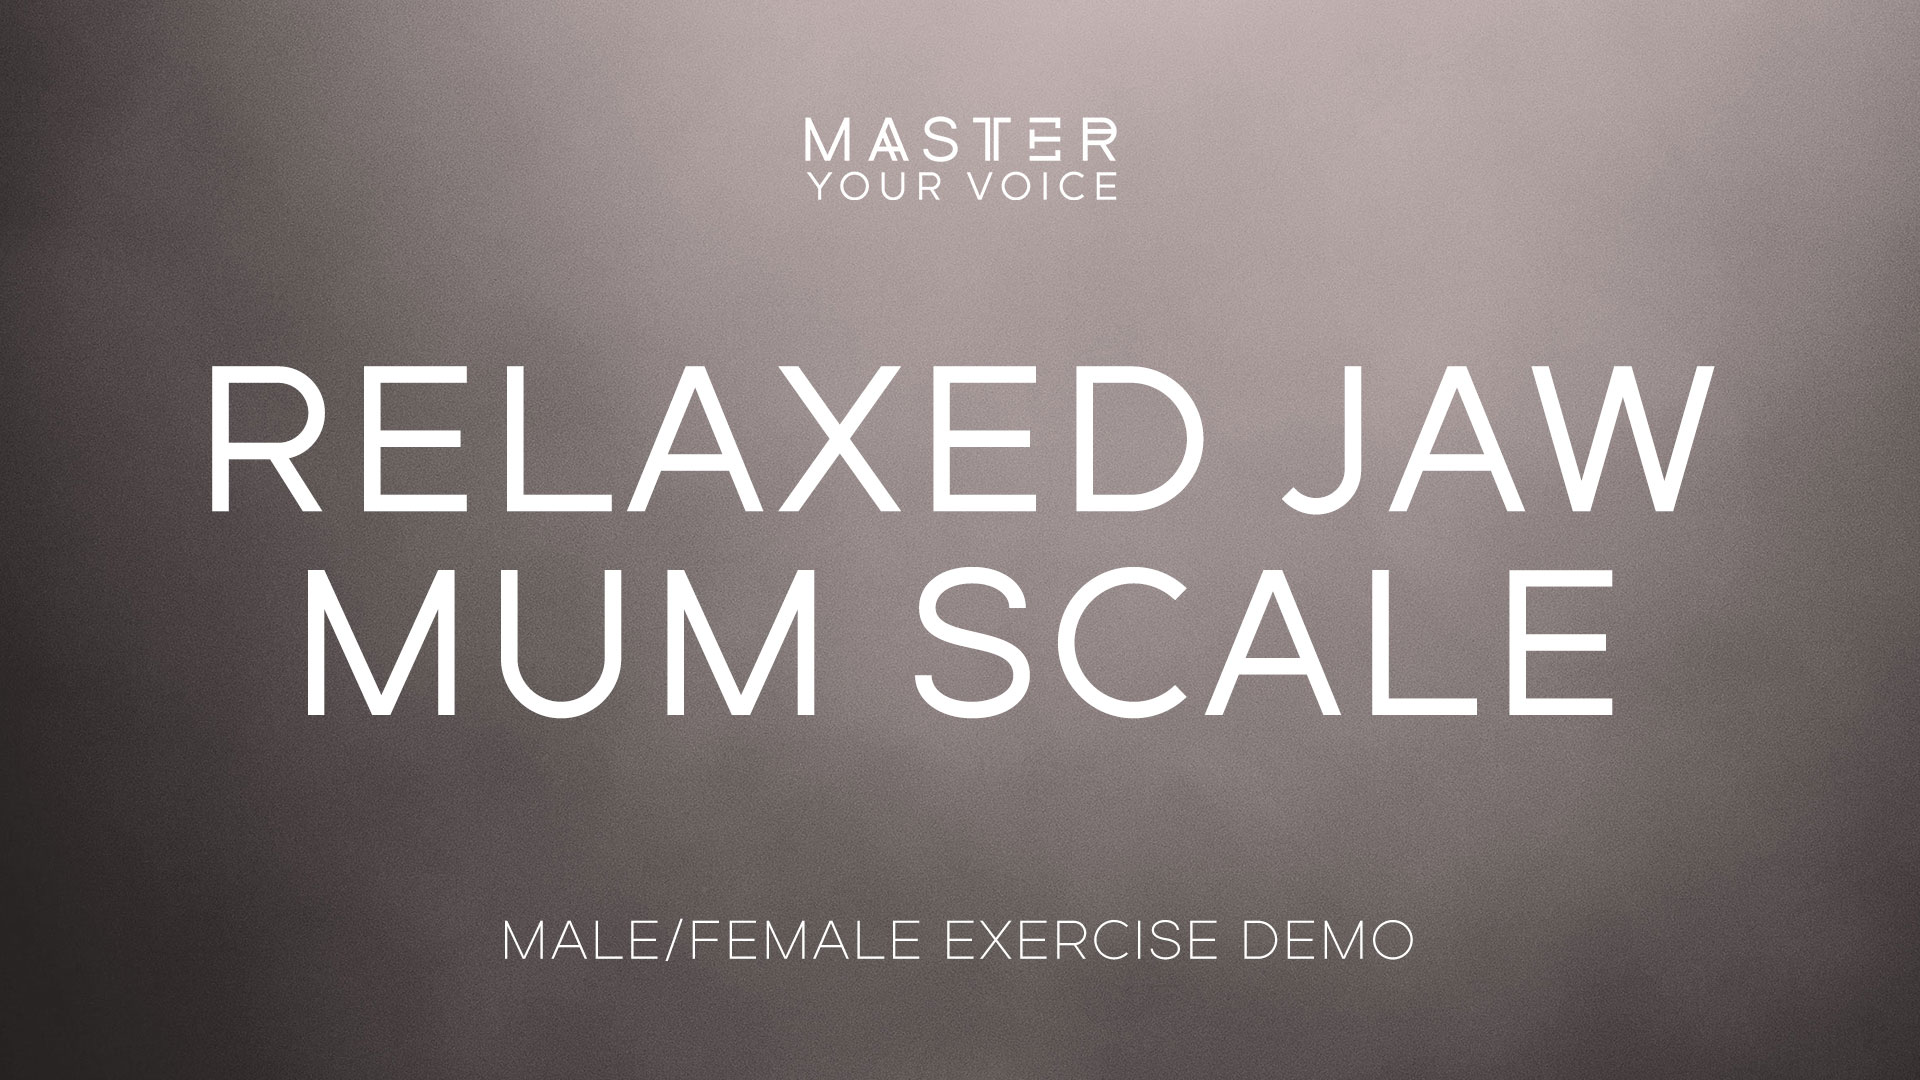 Relaxed Jaw Mum Scale Exercise Demo